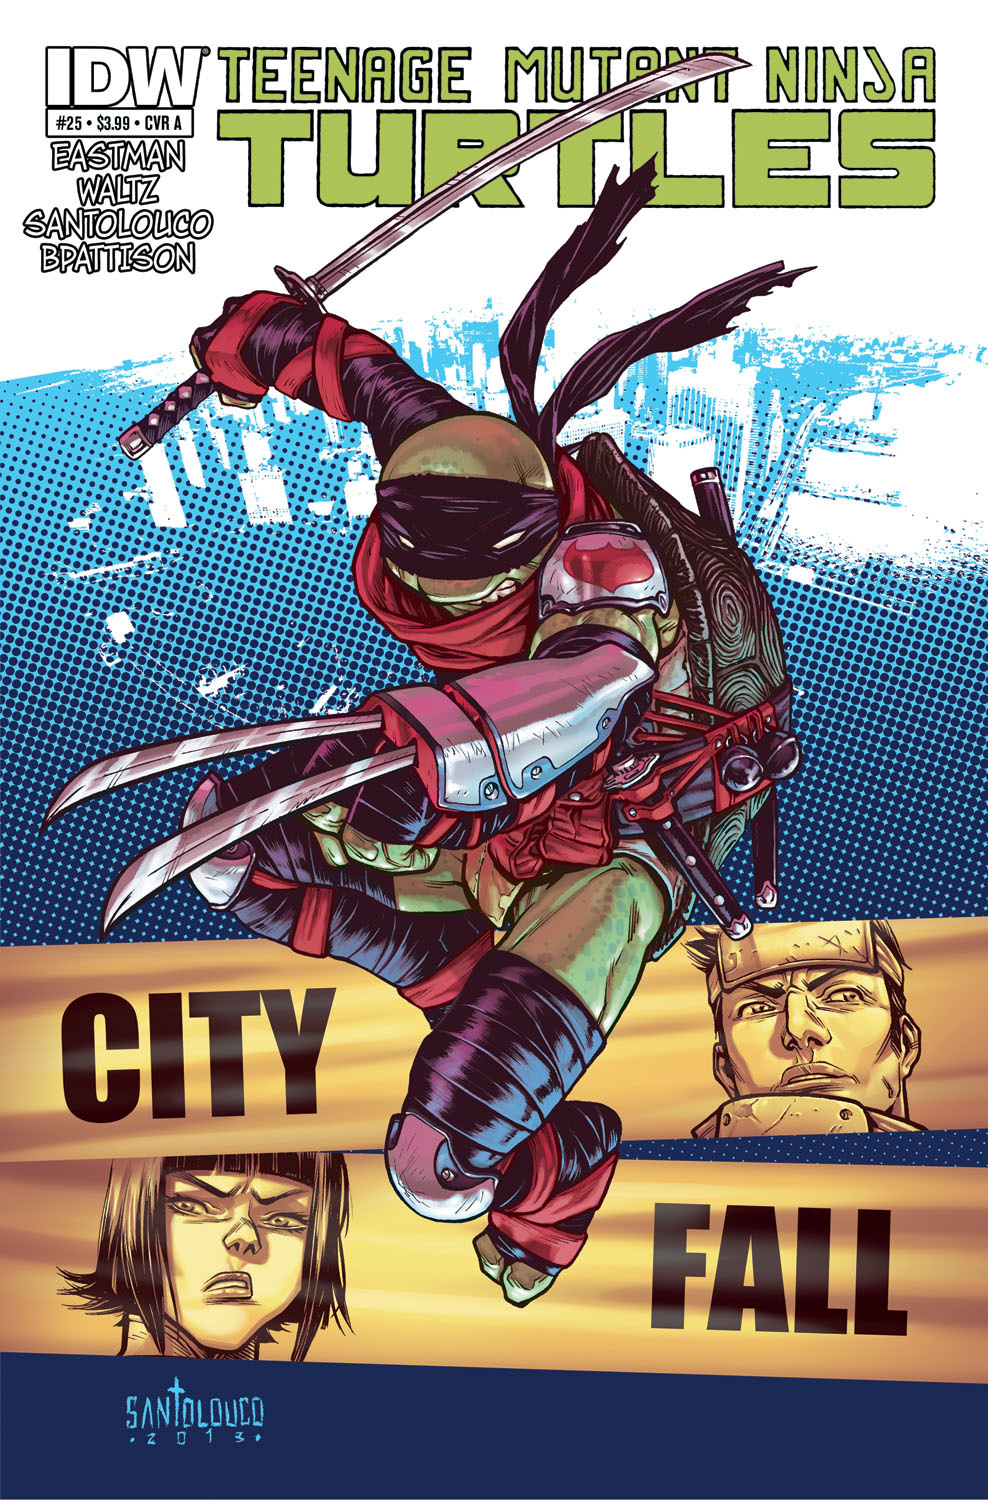 "mooncalfe:  santolouco:  TMNT#25: City Fall_cover by *Santolouco My cover for IDW'S TMNT#25: City Fall-part 4The cool thing about this issue is that I'll be teaming up with the legend and TMNT co-creator Kevin Eastman who will do the breakdowns/preliminary layouts!""CITY FALL"" part 4: City Fall continues as Shredder reveals his new second-in-command: Leonardo! While the underworld readies their armies, the Turtles must come together if they have any hope of saving their brother. Don't miss this landmark 25th issue that sees the launch of a full-scale war on New York City! The Savate, Foot Clan, and Slash are all back — along with a couple of shocking special guests!Btw, all these covers are colored by me.Like it on Facebook > http://on.fb.me/10u1bITFave it on Deviant Art > http://fav.me/d65gfu4  omg  Turtlegasm!!"